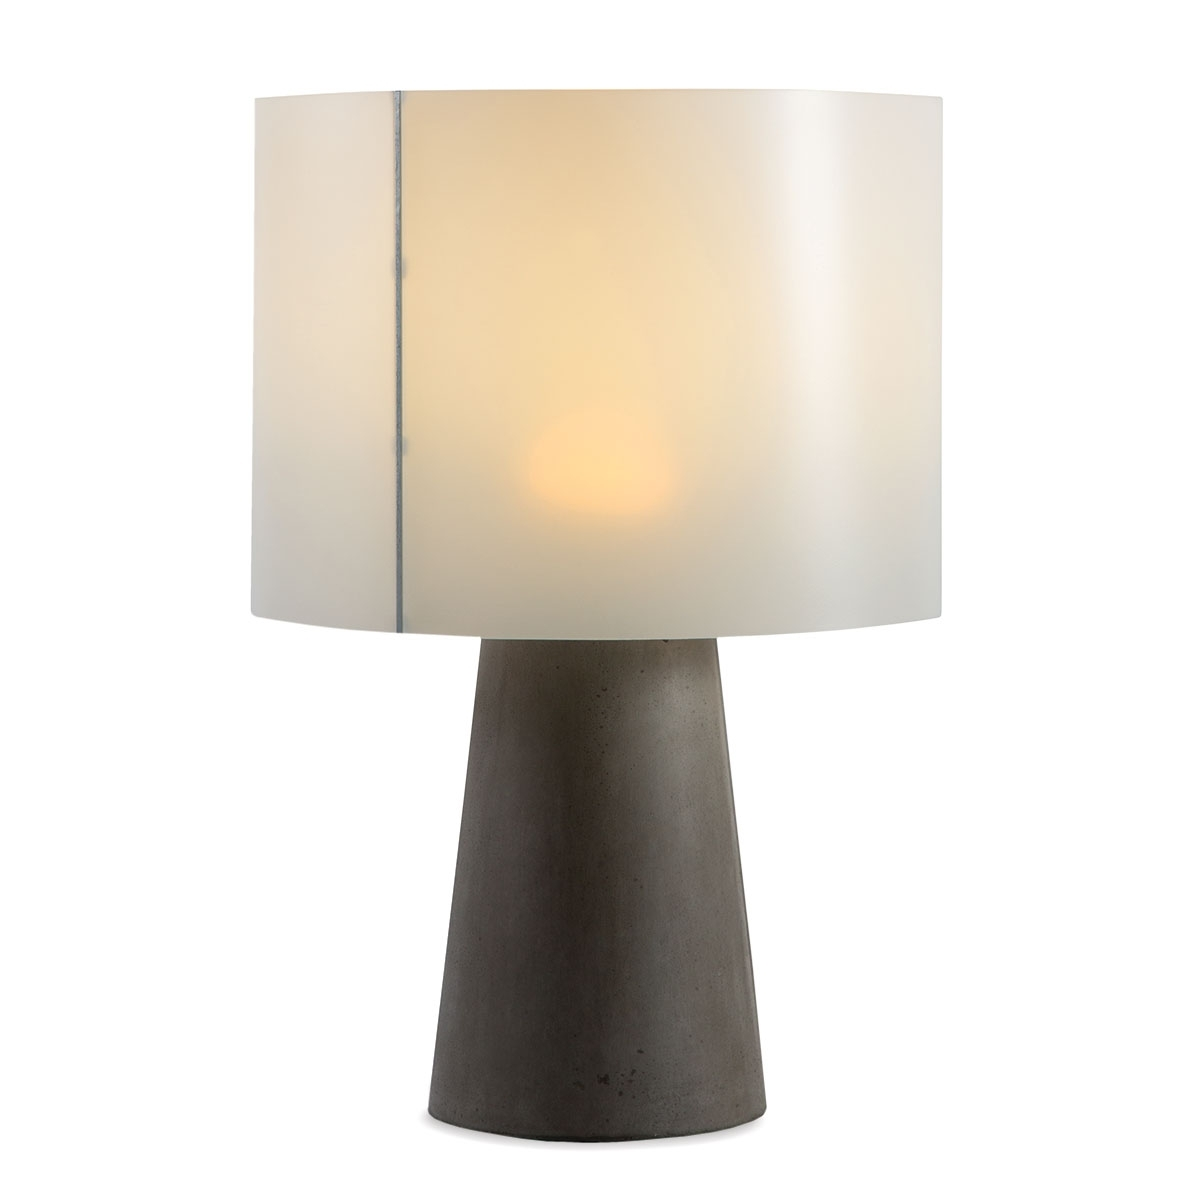 Inda Outdoor Cordless Concrete Table Lamp Dark Gray In Current Cordless Living Room Table Lamps (Gallery 3 of 15)